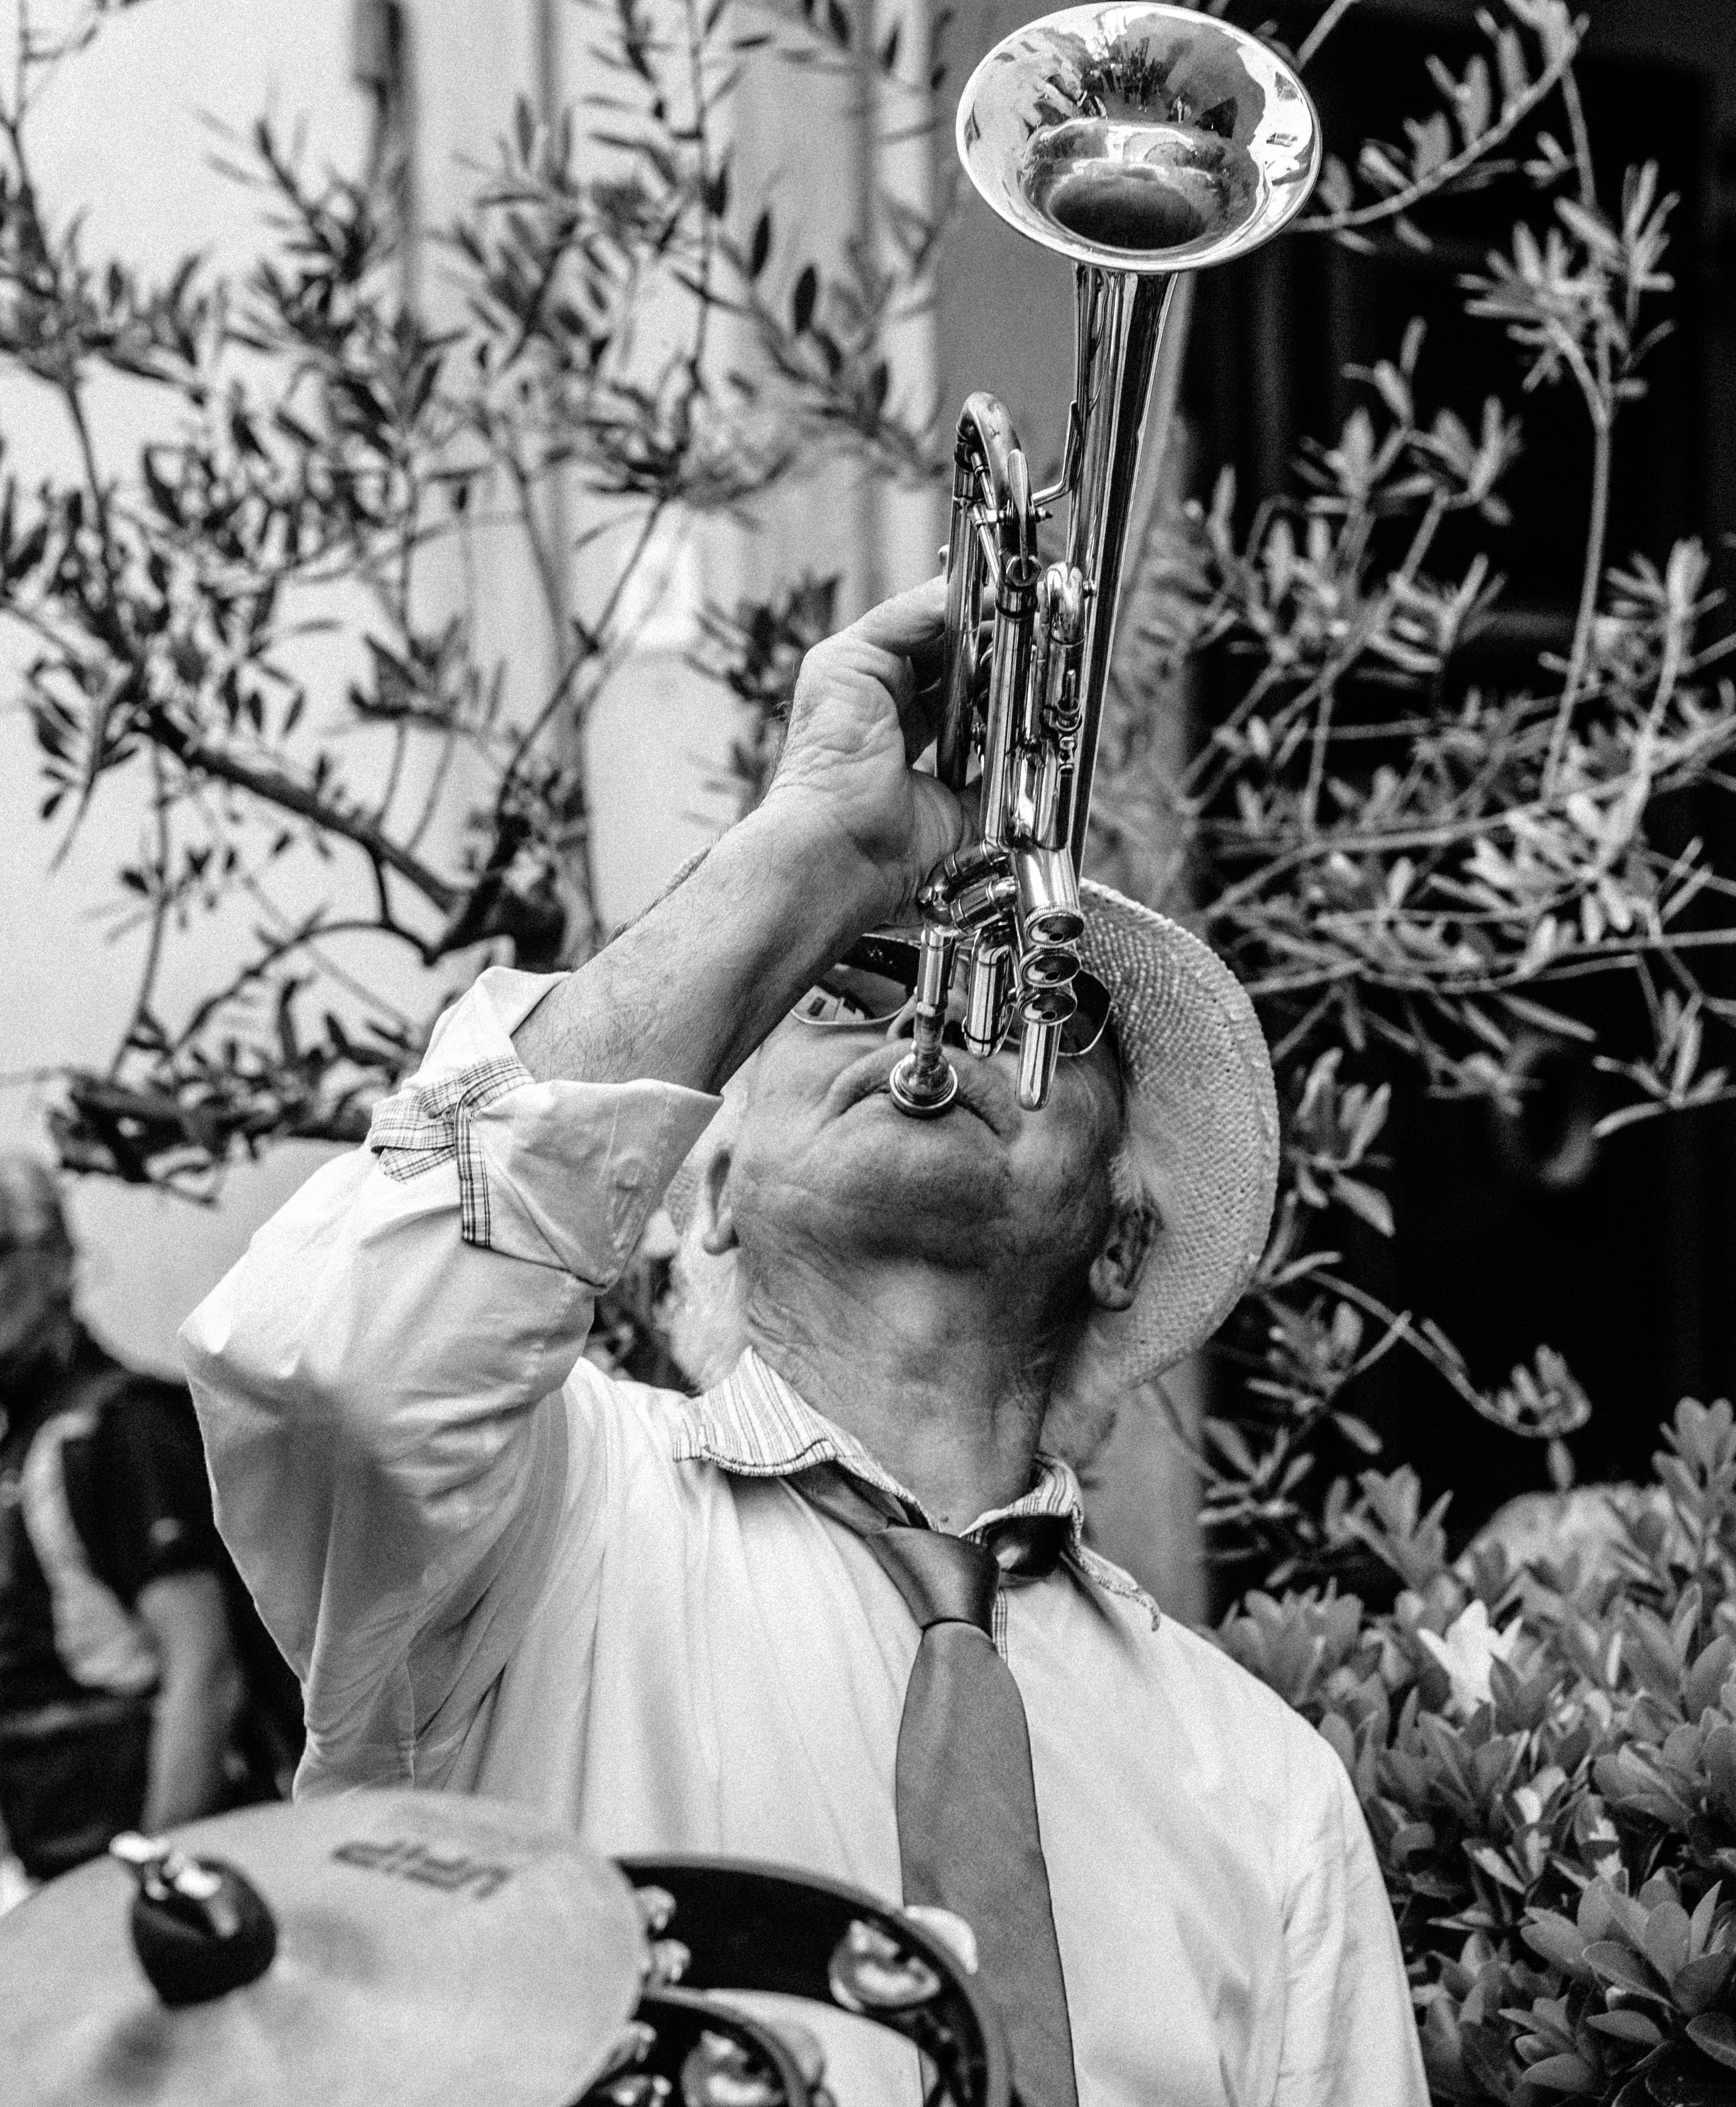 grayscale photography of man playing trumpet